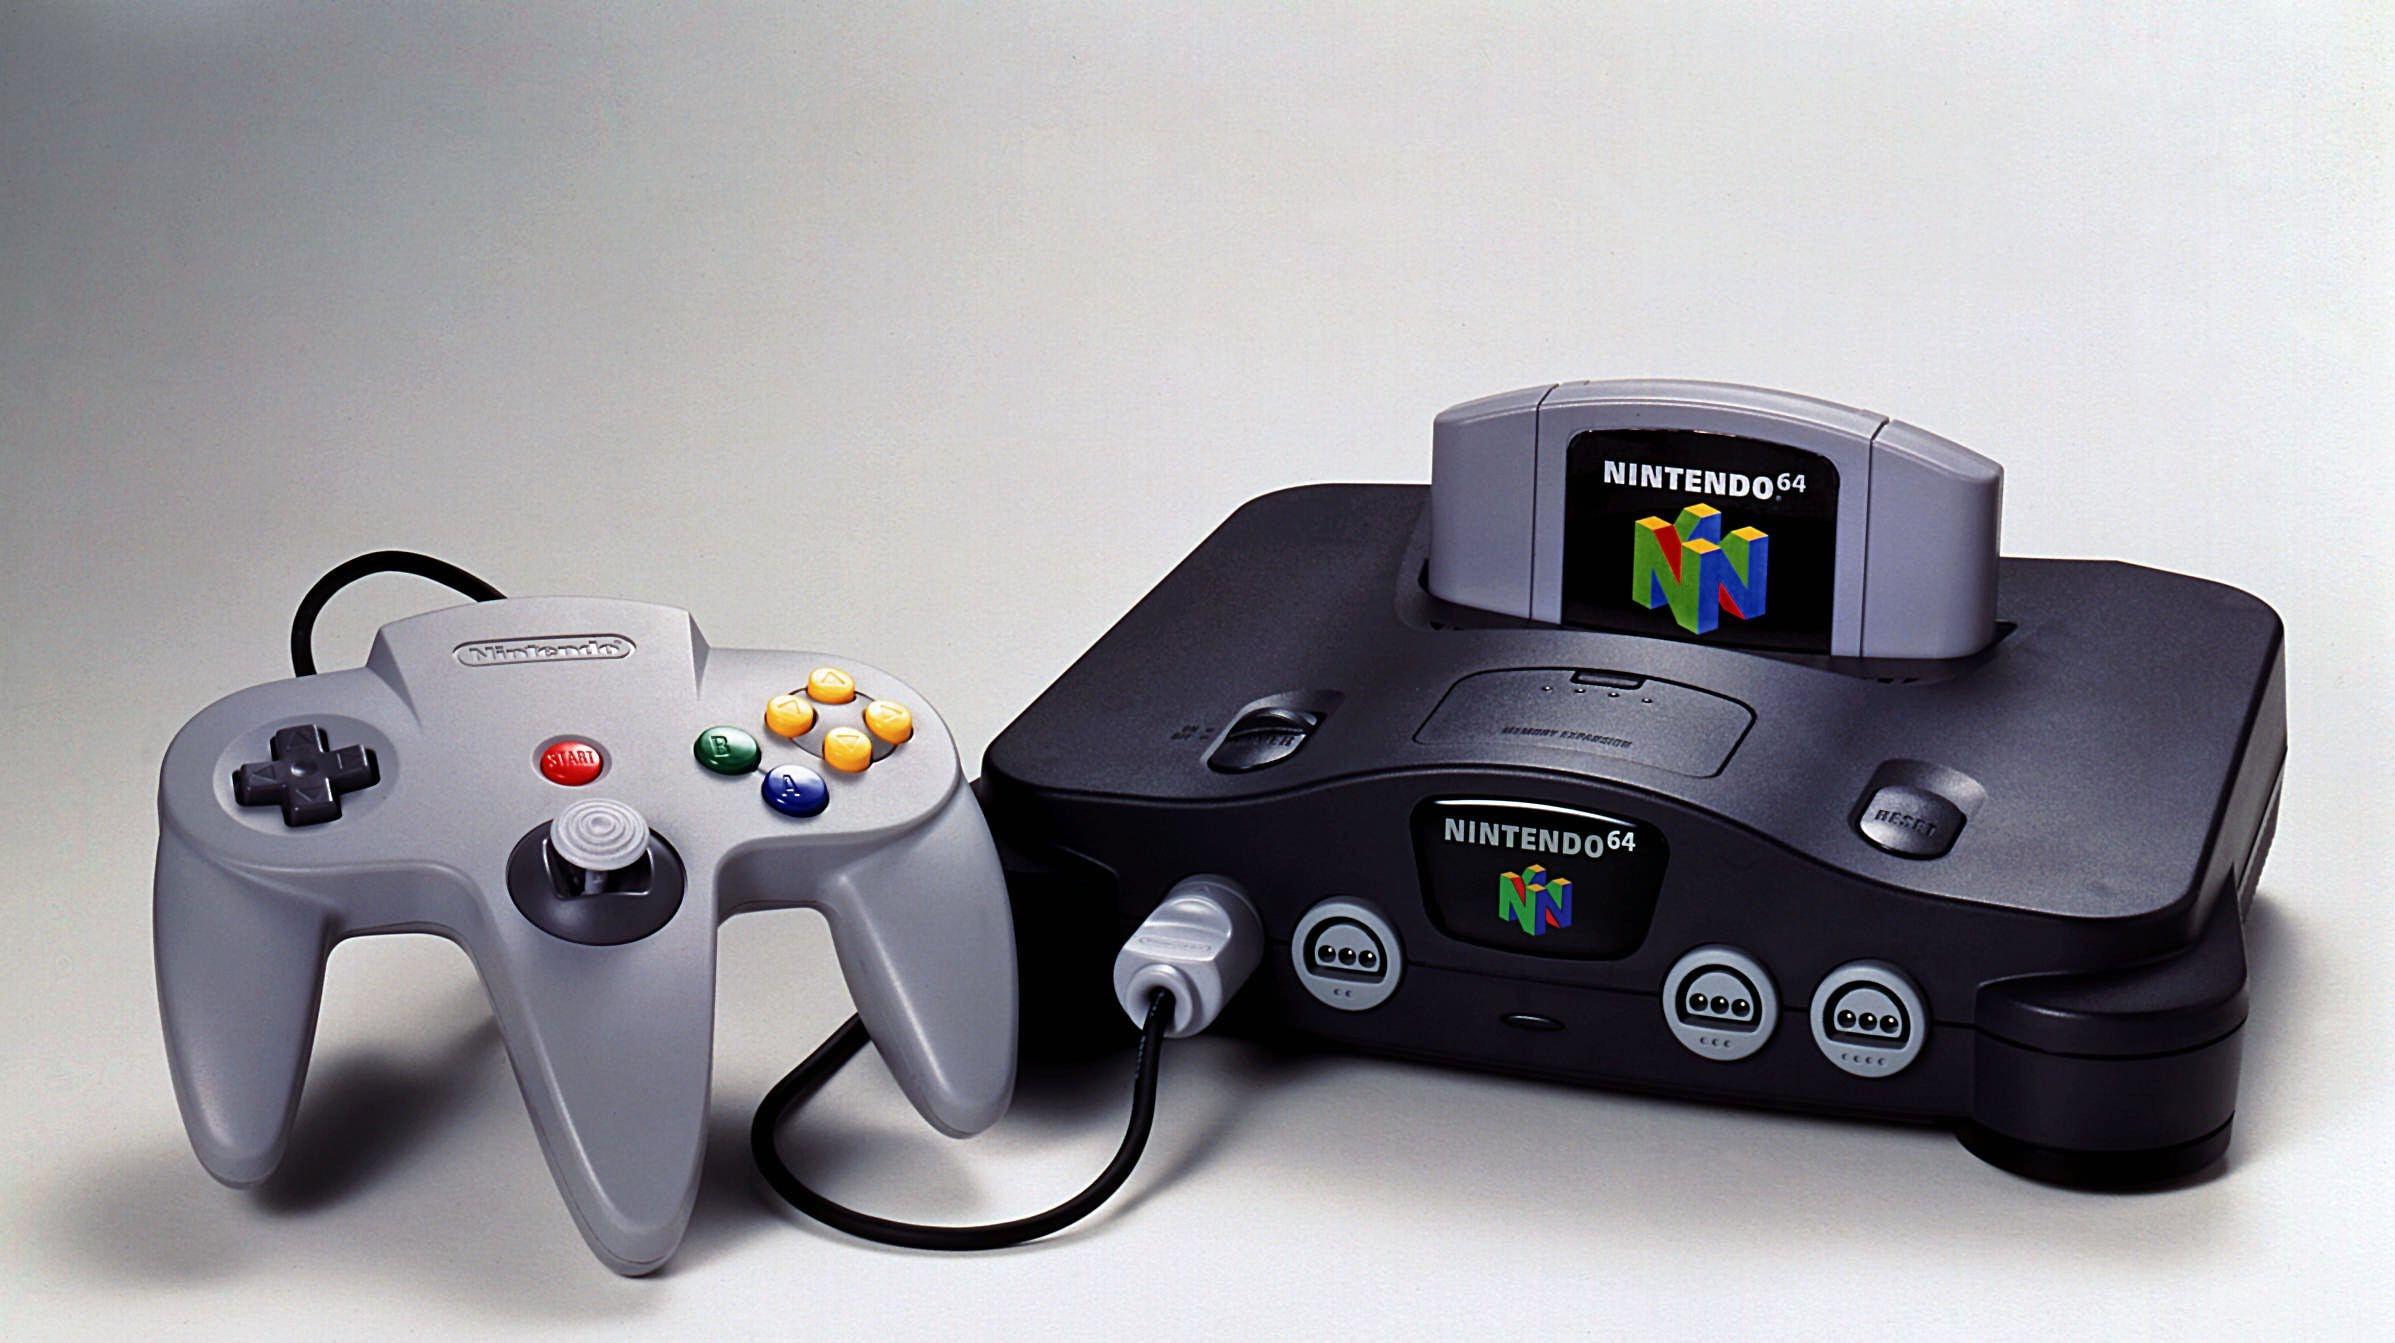 Nintendo president crushes hopes for an N64 Classic